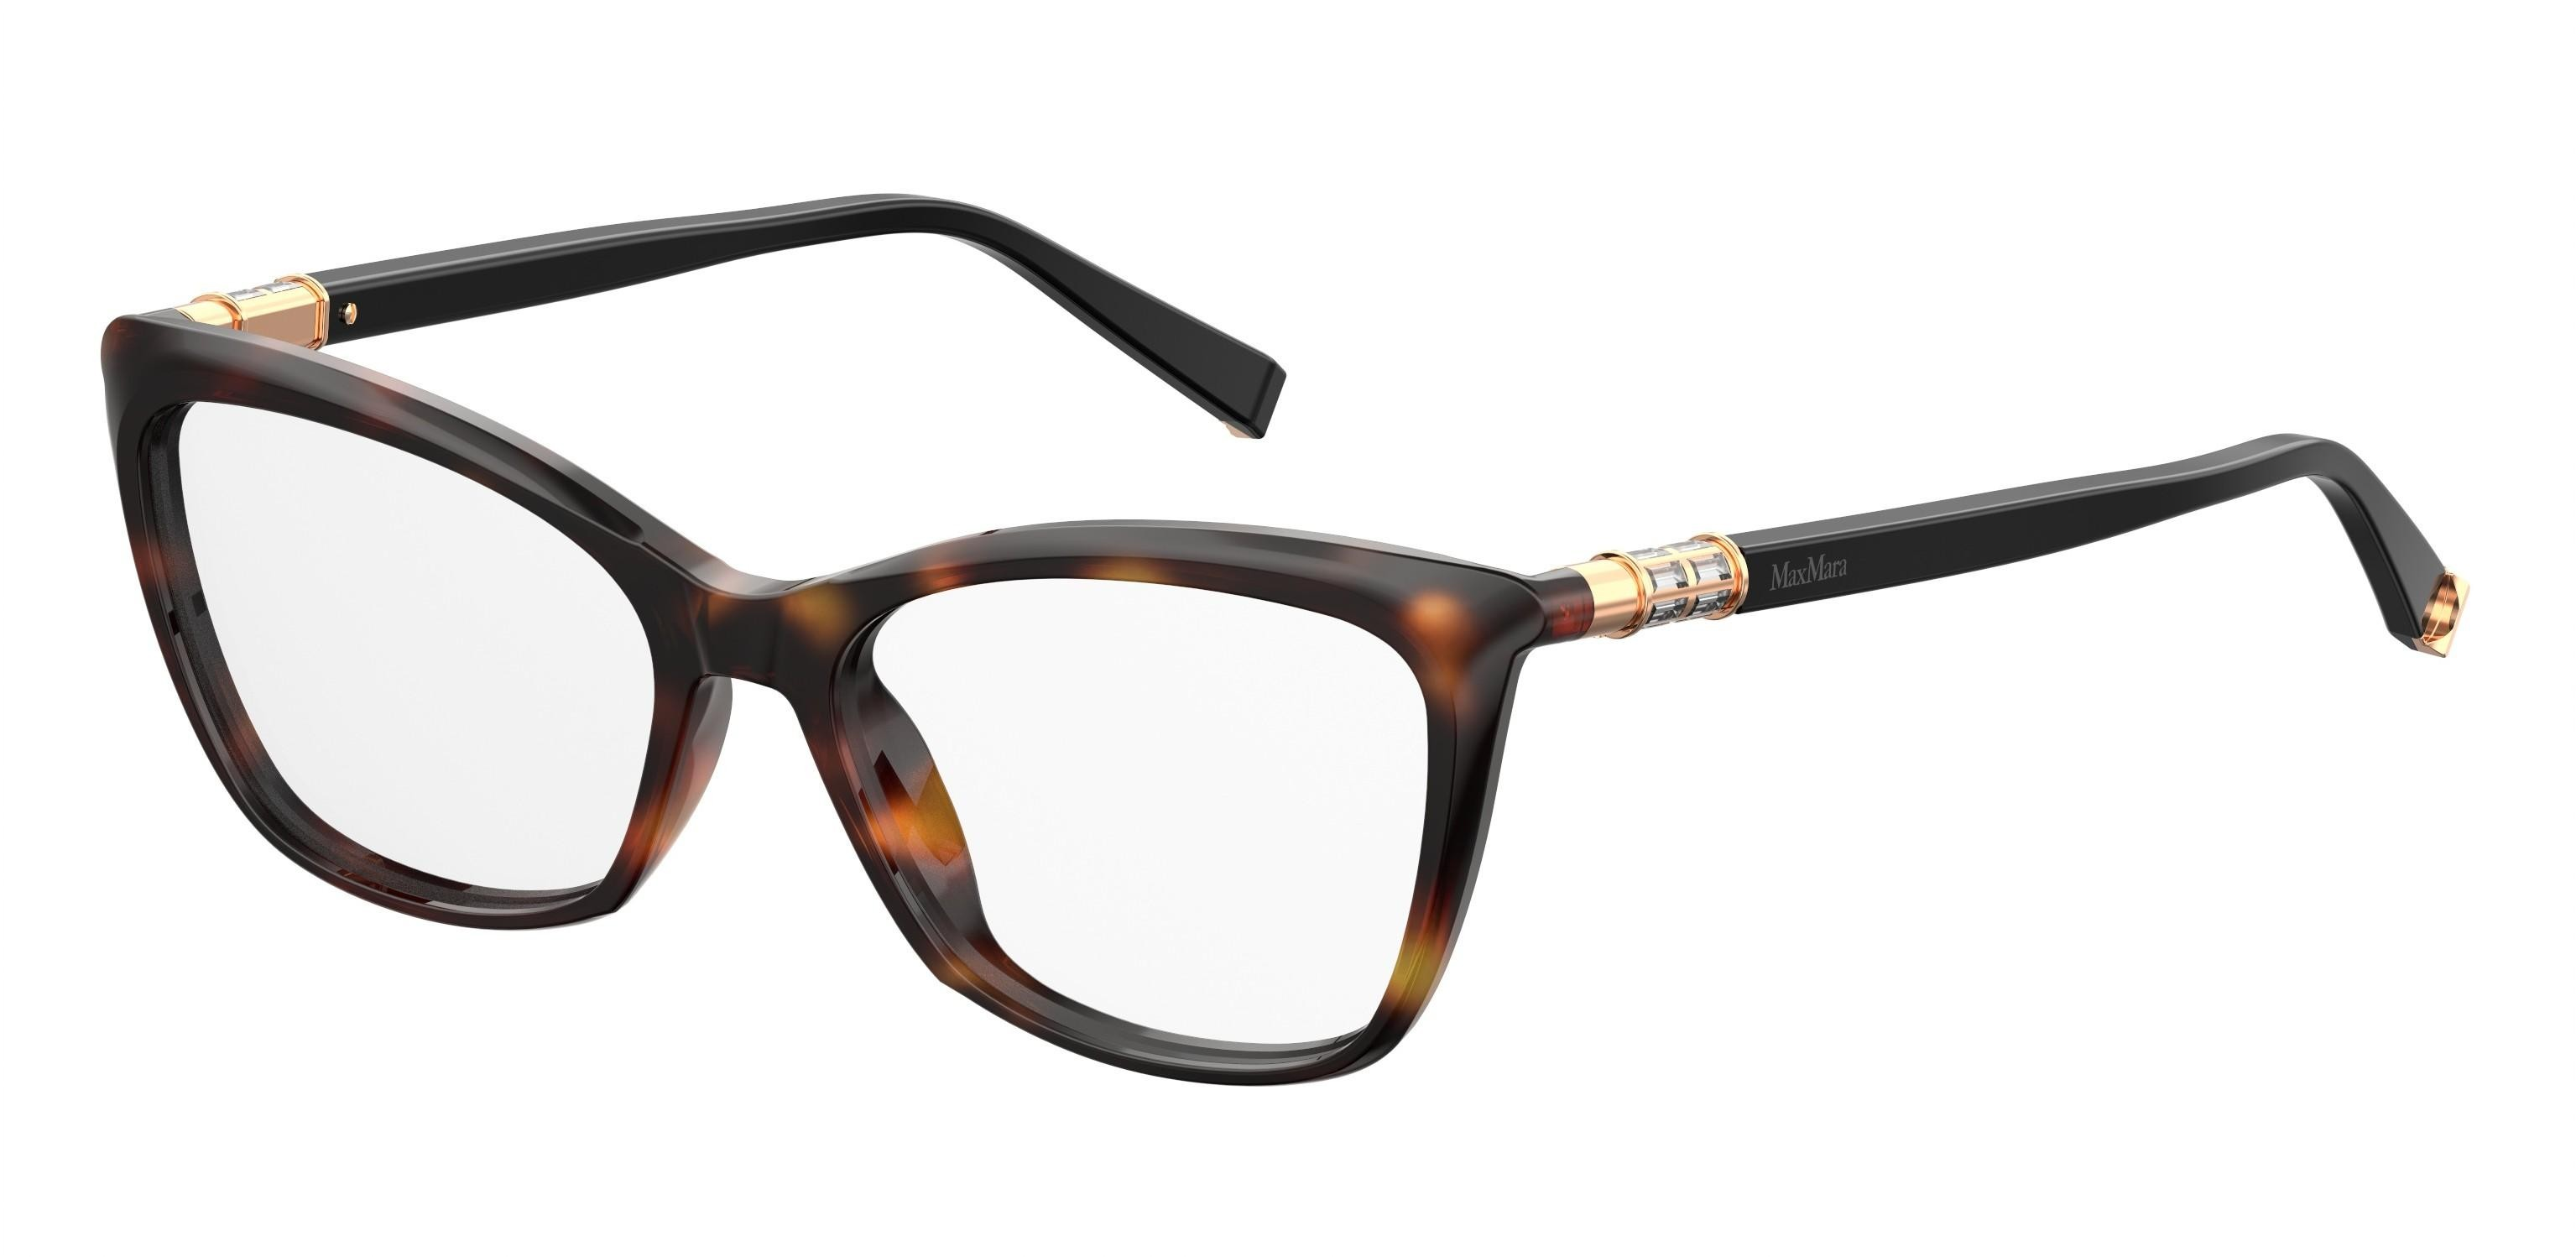 Max Mara eyeglasses MM 1339